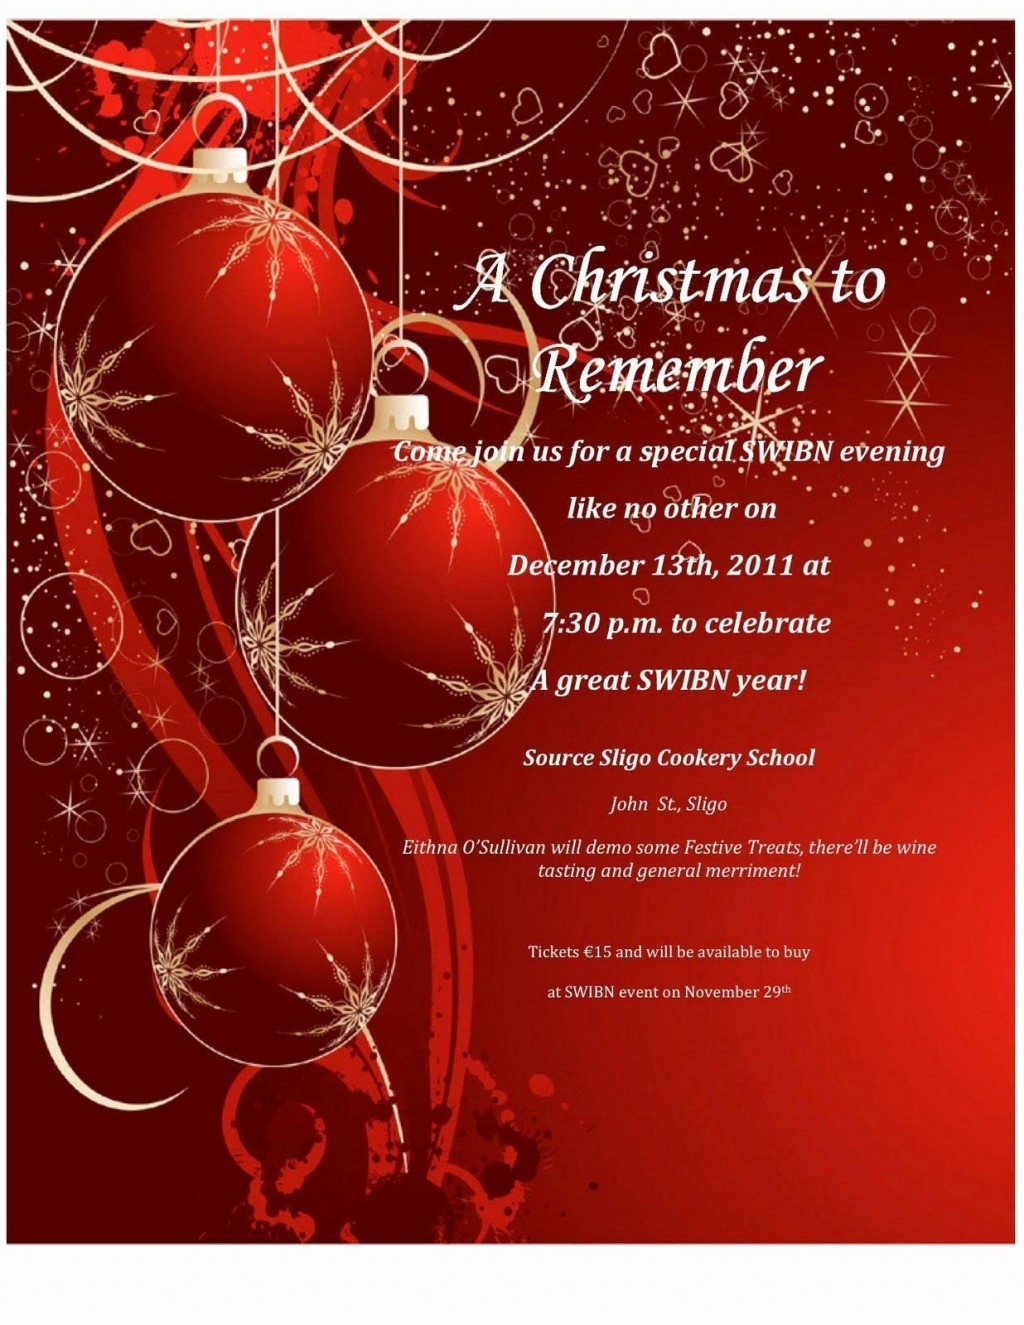 007 Wondrou Xma Party Invite Template Free Inspiration  Holiday Invitation Word Download ChristmaLarge